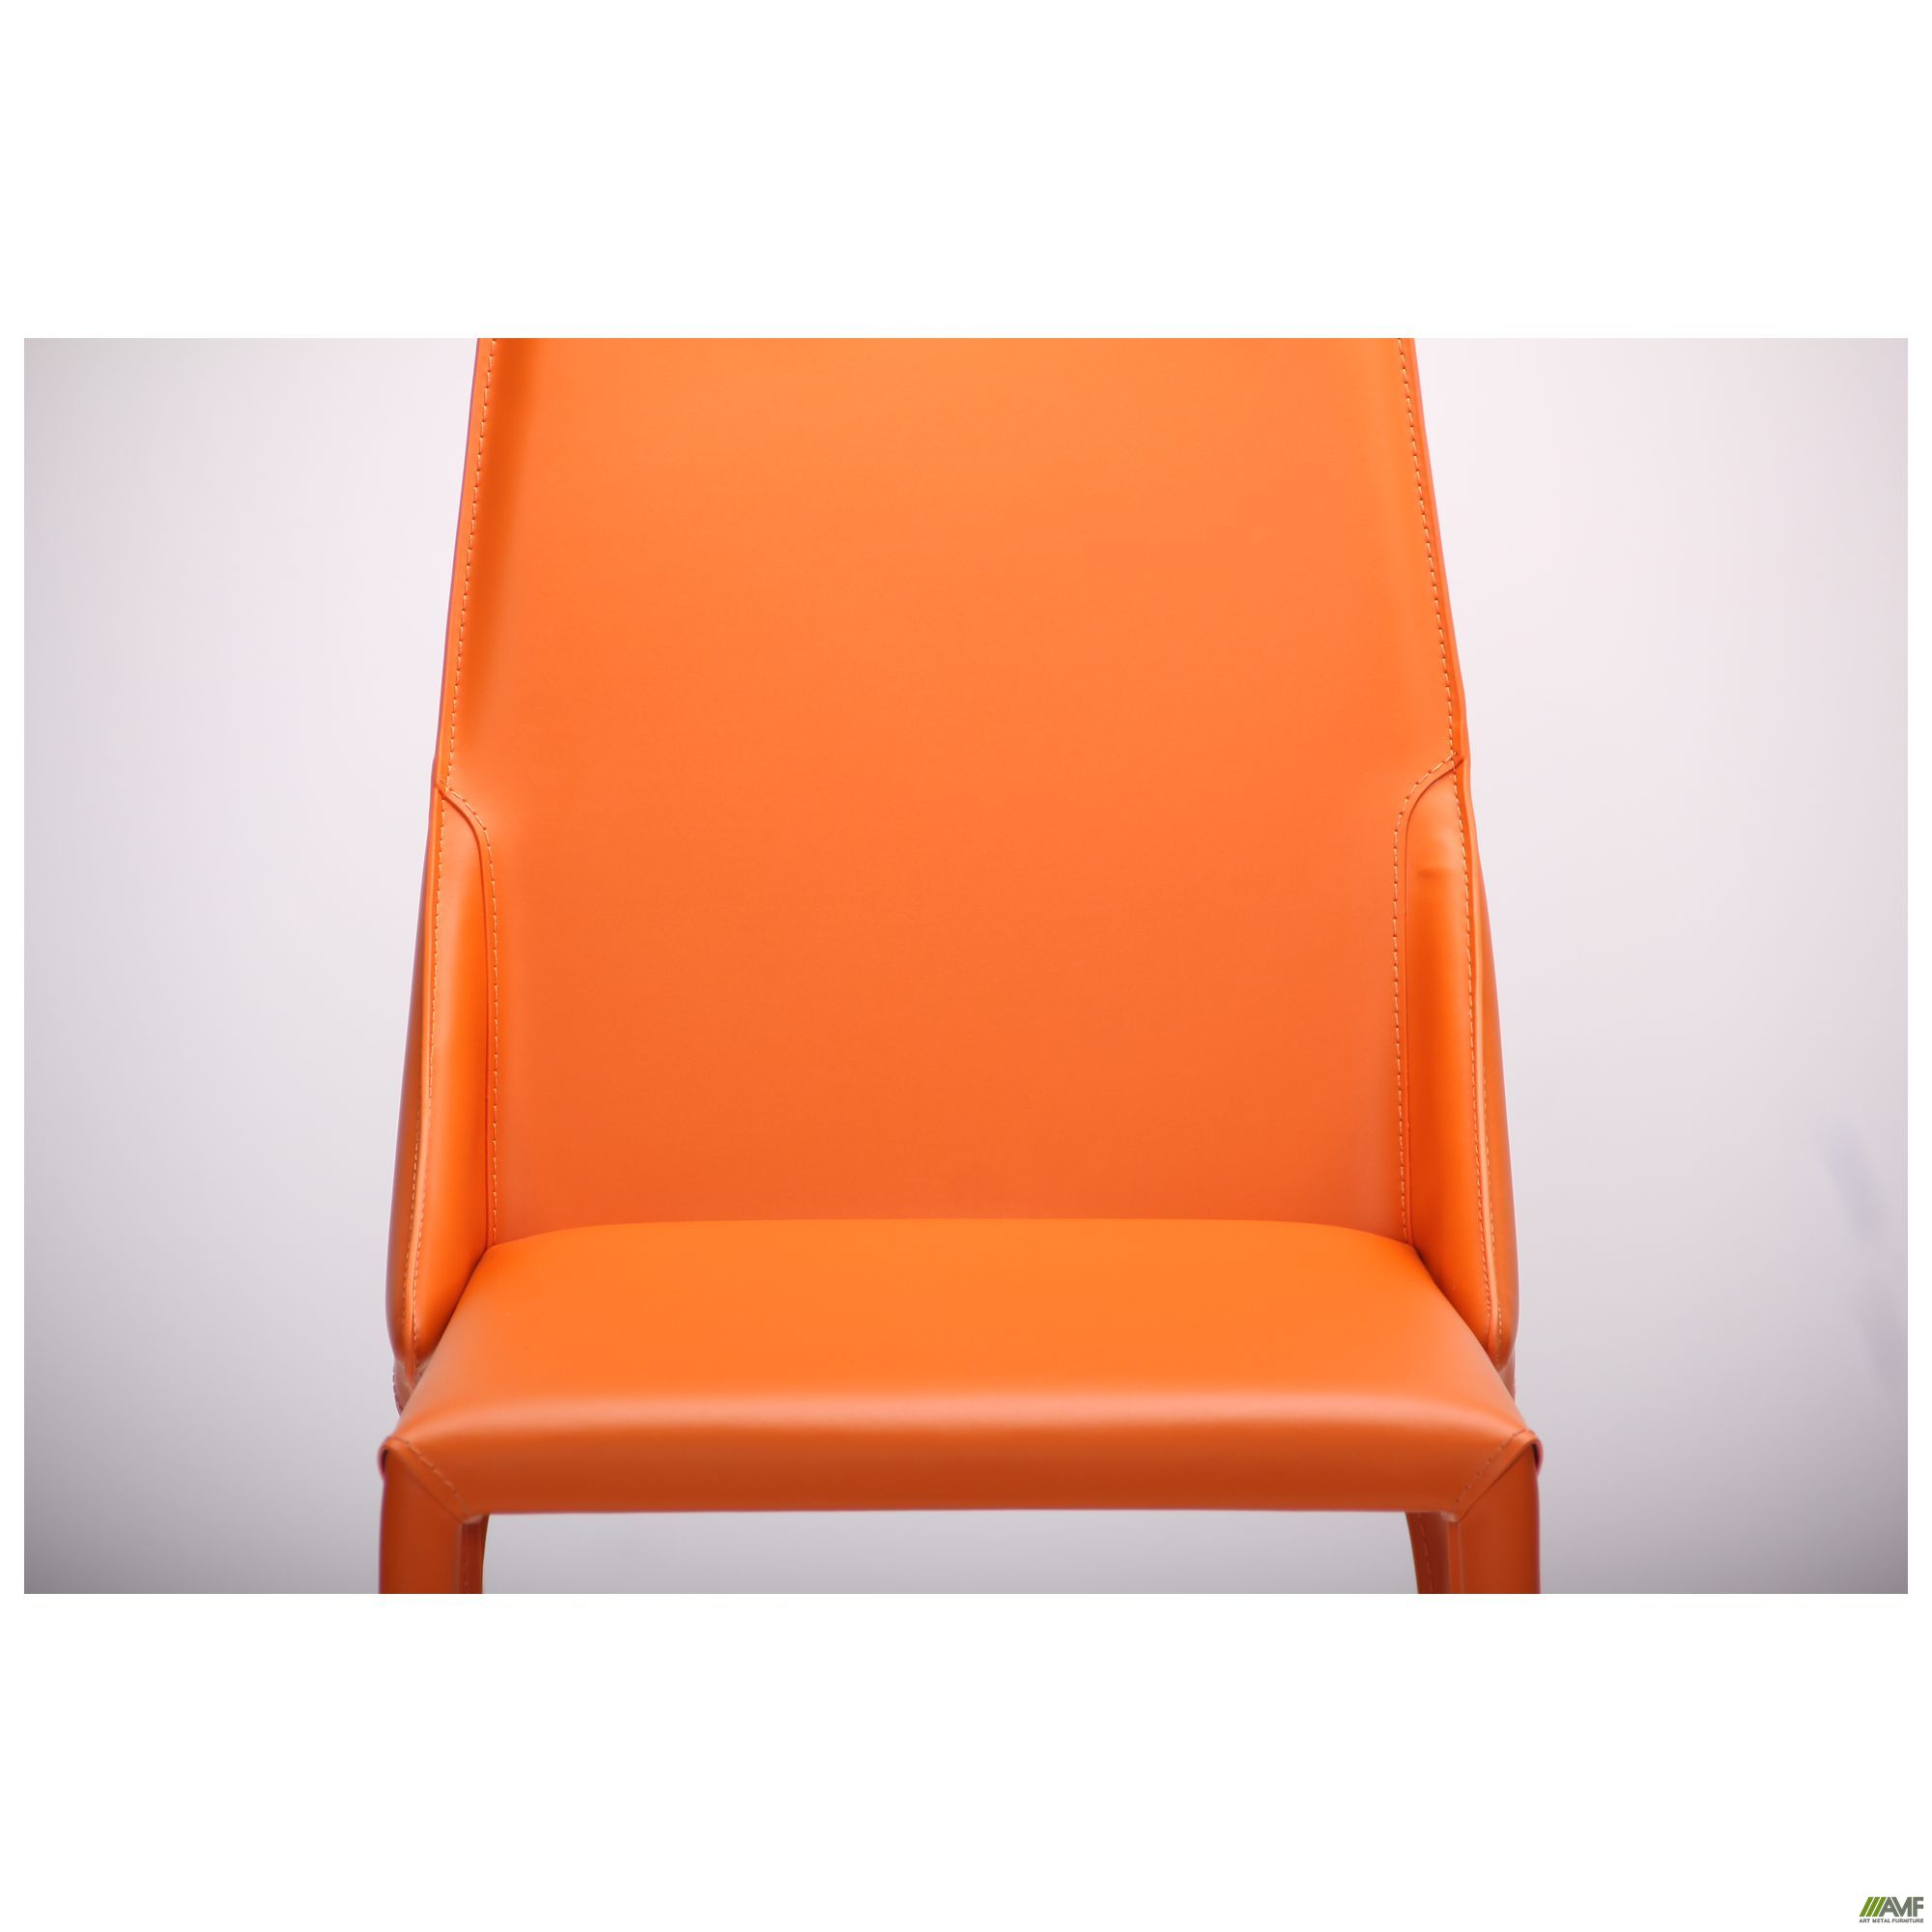 Фото 8 - Стул Artisan orange leather